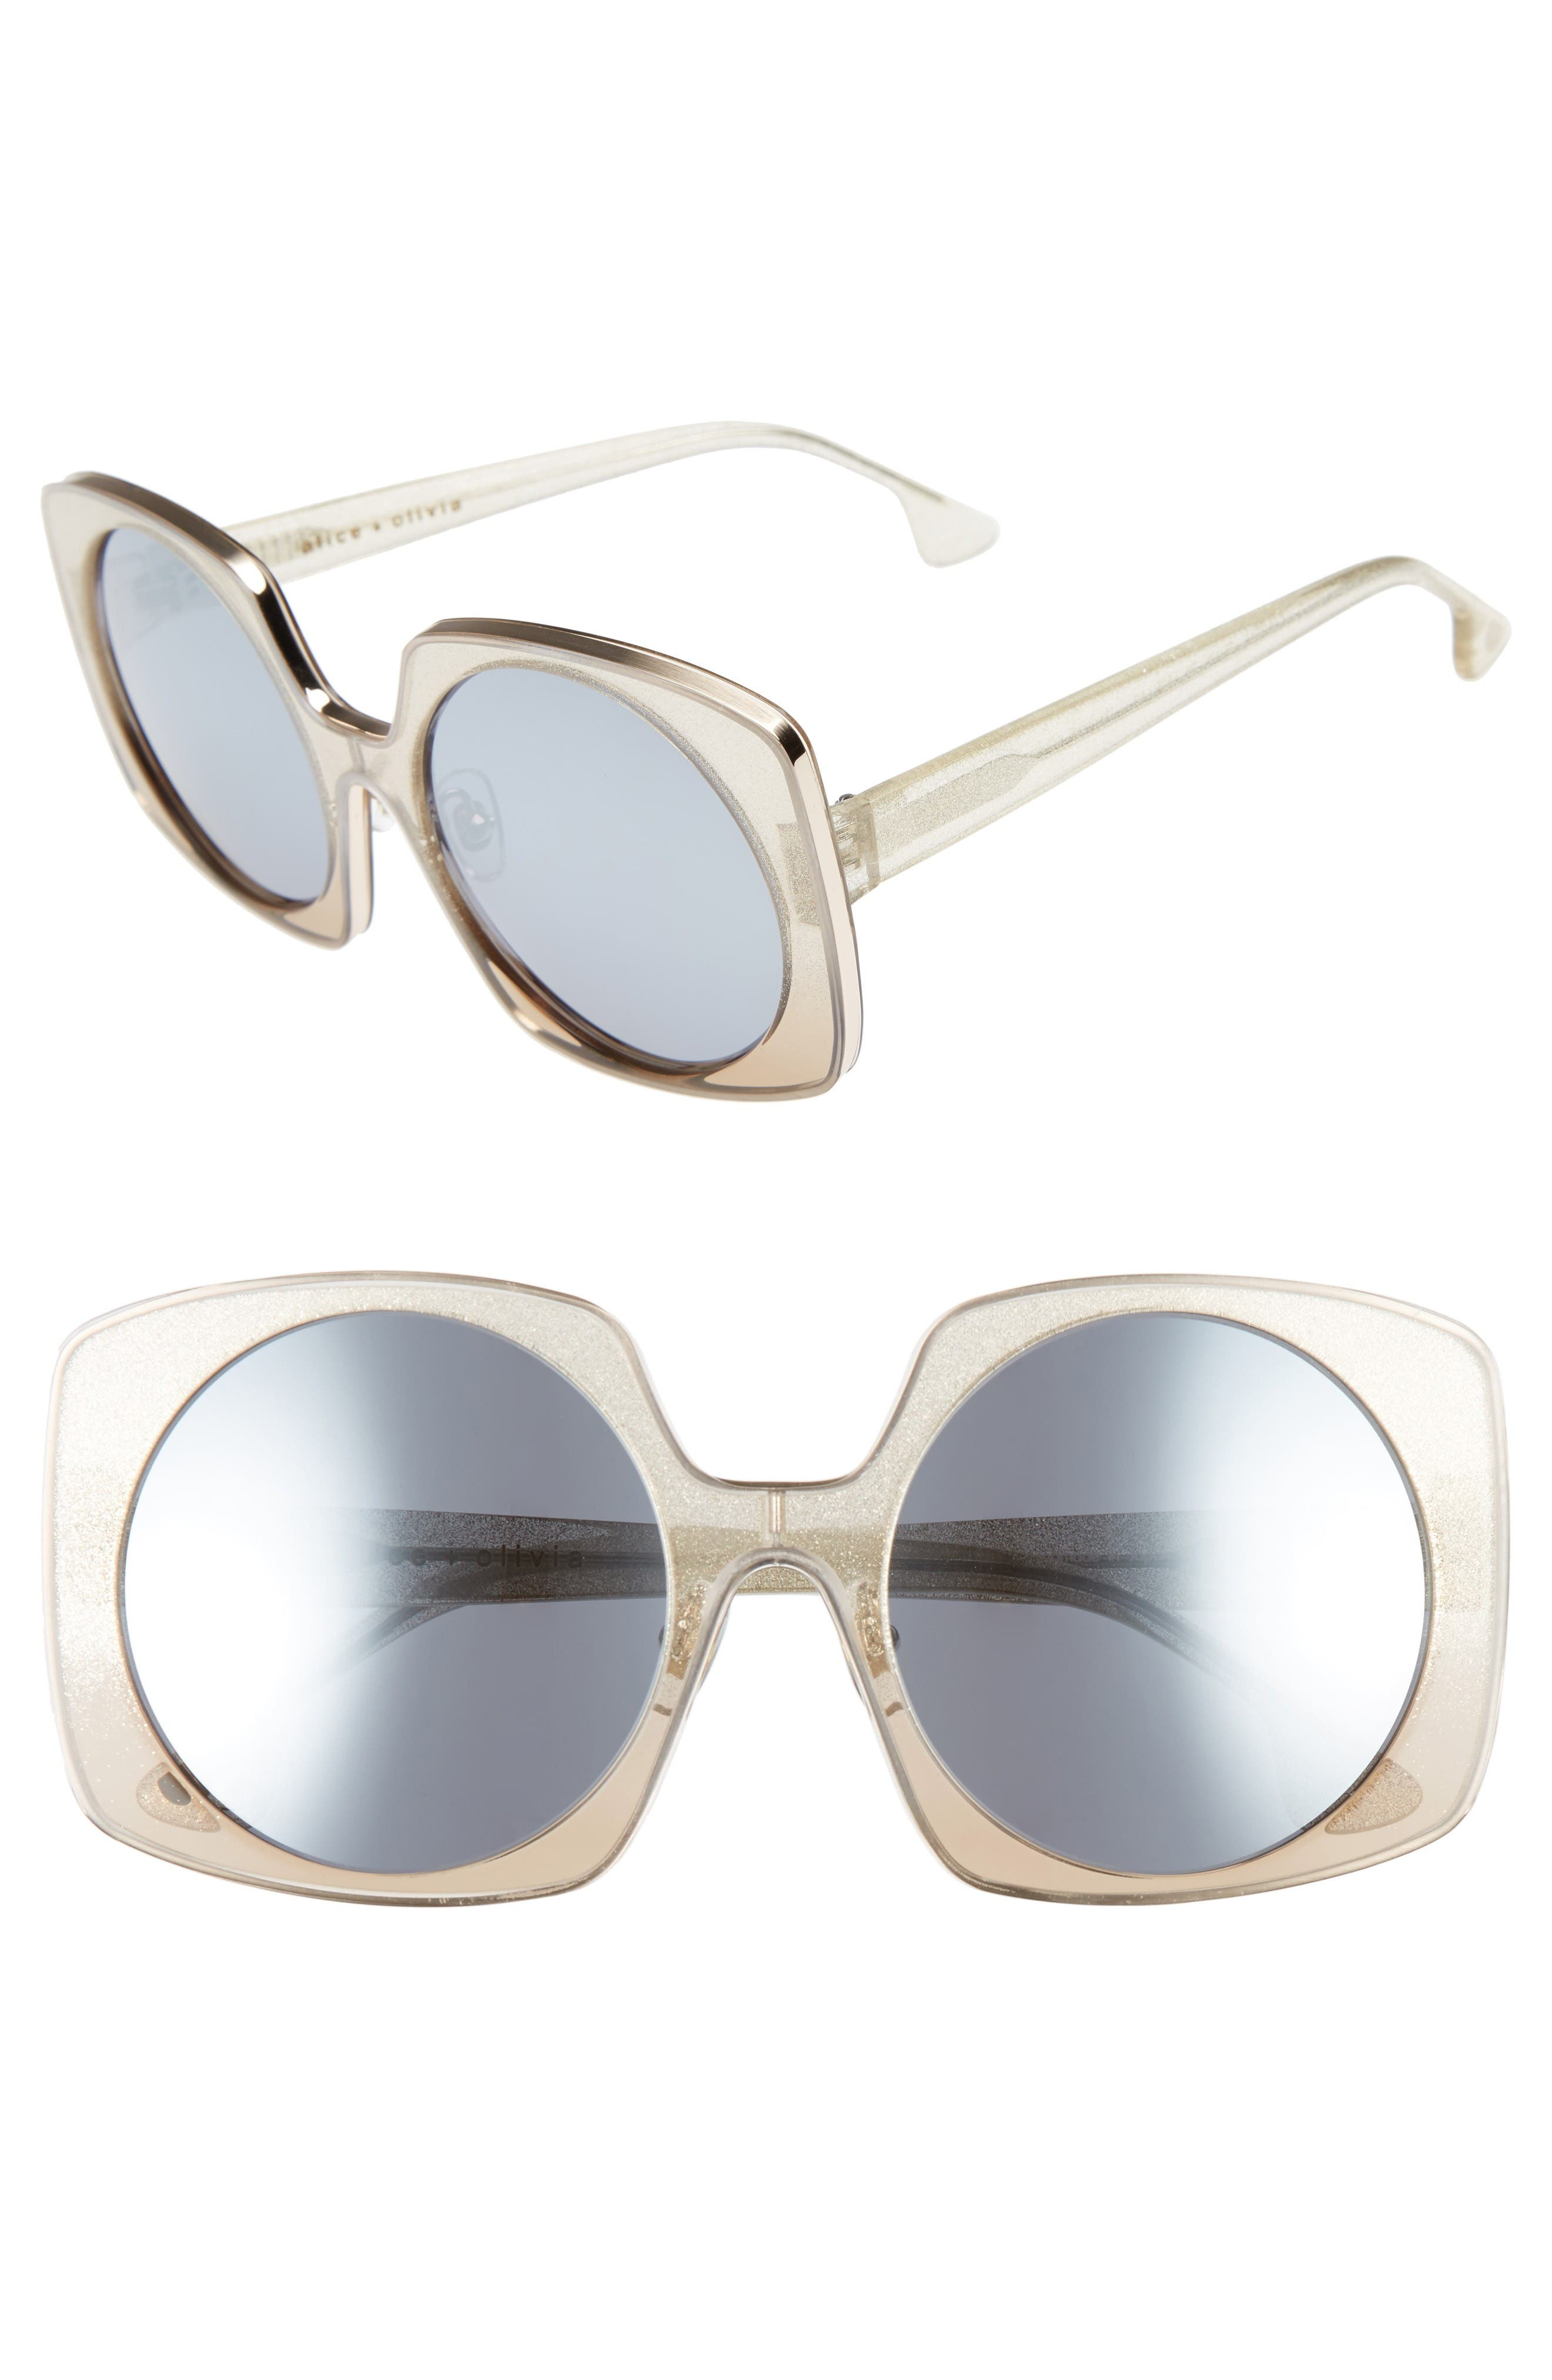 Alternate Image 1 Selected - Alice + Olivia Canton 55mm Special Fit Square Sunglasses